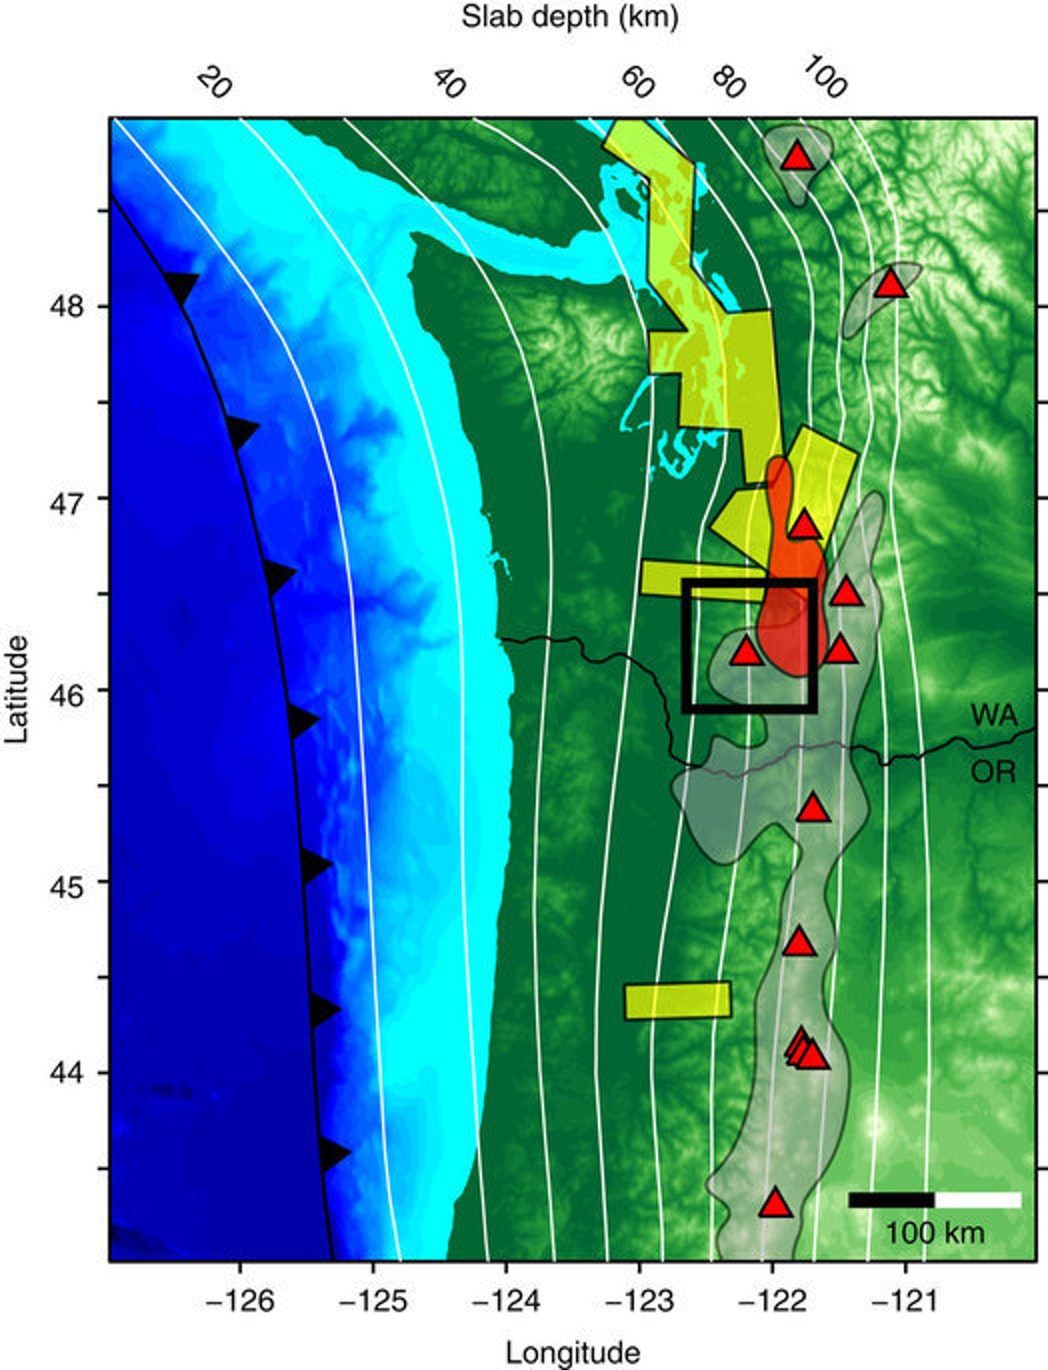 The location of the subduction trench is shown in black and the depth of the Juan de Fuca slab is contoured with white lines32. Locations of the major Quaternary volcanoes active are plotted as red triangles and the grey regions depict the distribution of volcanic vents7. Yellow boxes show where previous seismic experiments have observed a weak Moho arrival13,14,18. The red shaded region denotes the location of the Southern Washington Cascades Conductor28,29. The black box outlines the location of the Mount St Helens map shown in Fig. 2. The thin black lines show the state boundary between Washington (WA) and Oregon (OR).